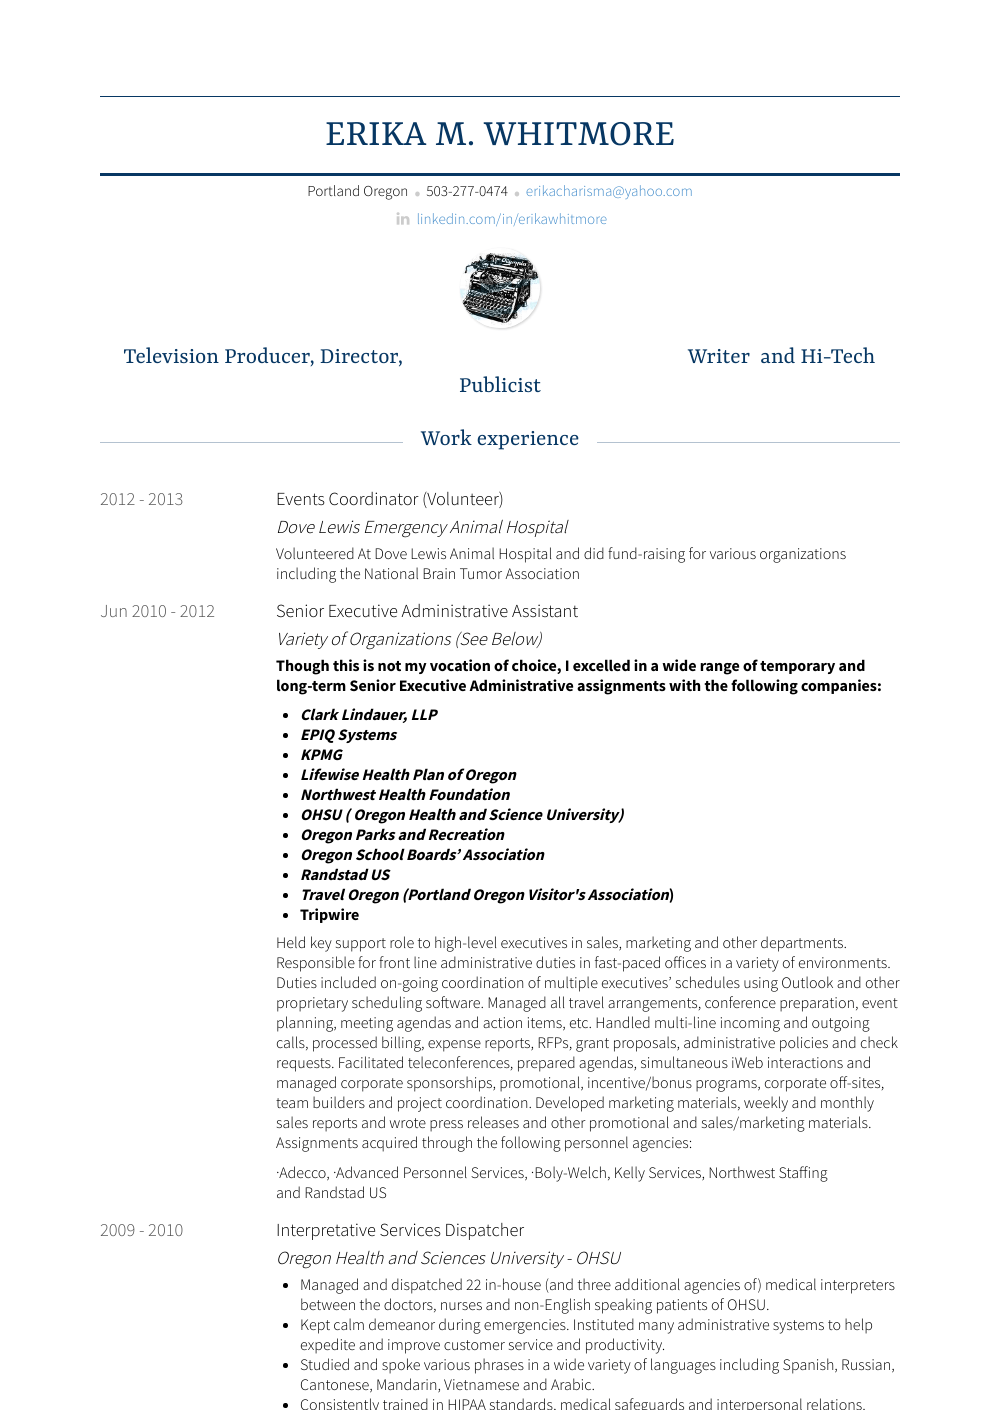 Senior Executive Administrative Assistant Resume Sample and Template